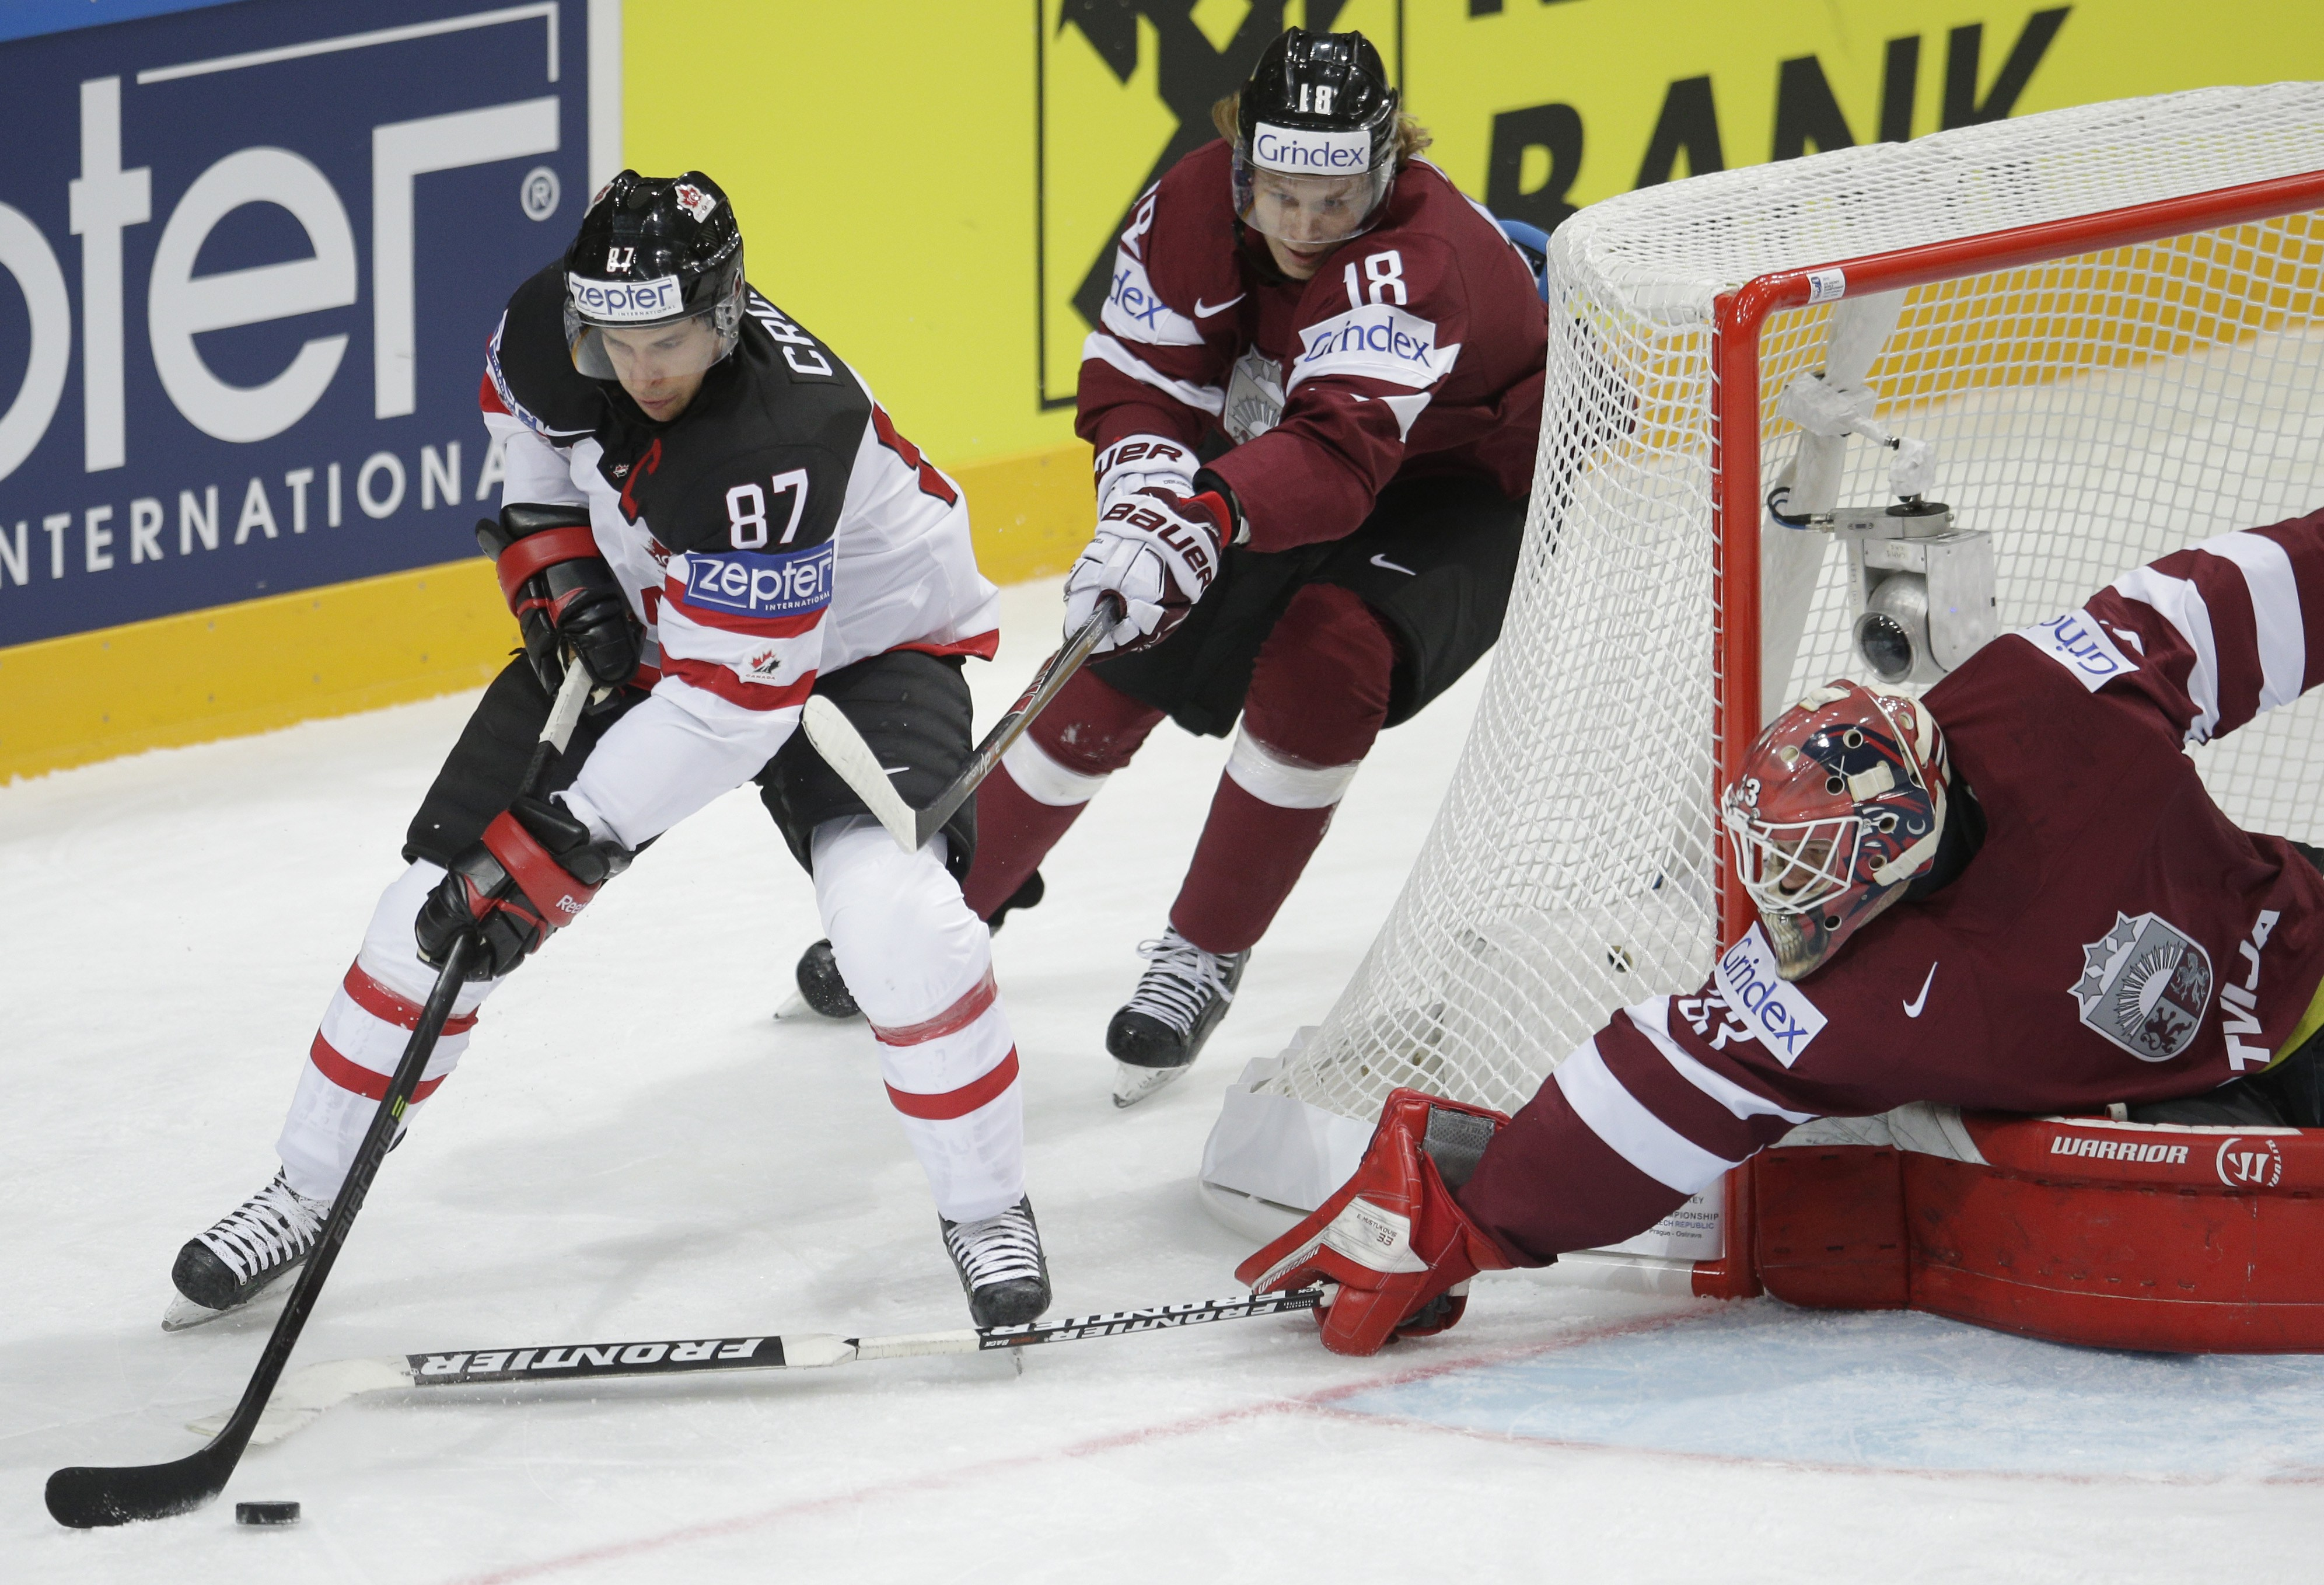 Canada's Sidney Crosby, left, controls a puck past Latvia's Rodrigo Abols, center, and Latvia's  Ervins Mustukovs, right, during the Hockey World Championships Group A in Prague, Czech Republic, Friday, May 1, 2015. (AP Photo/Petr David Josek)